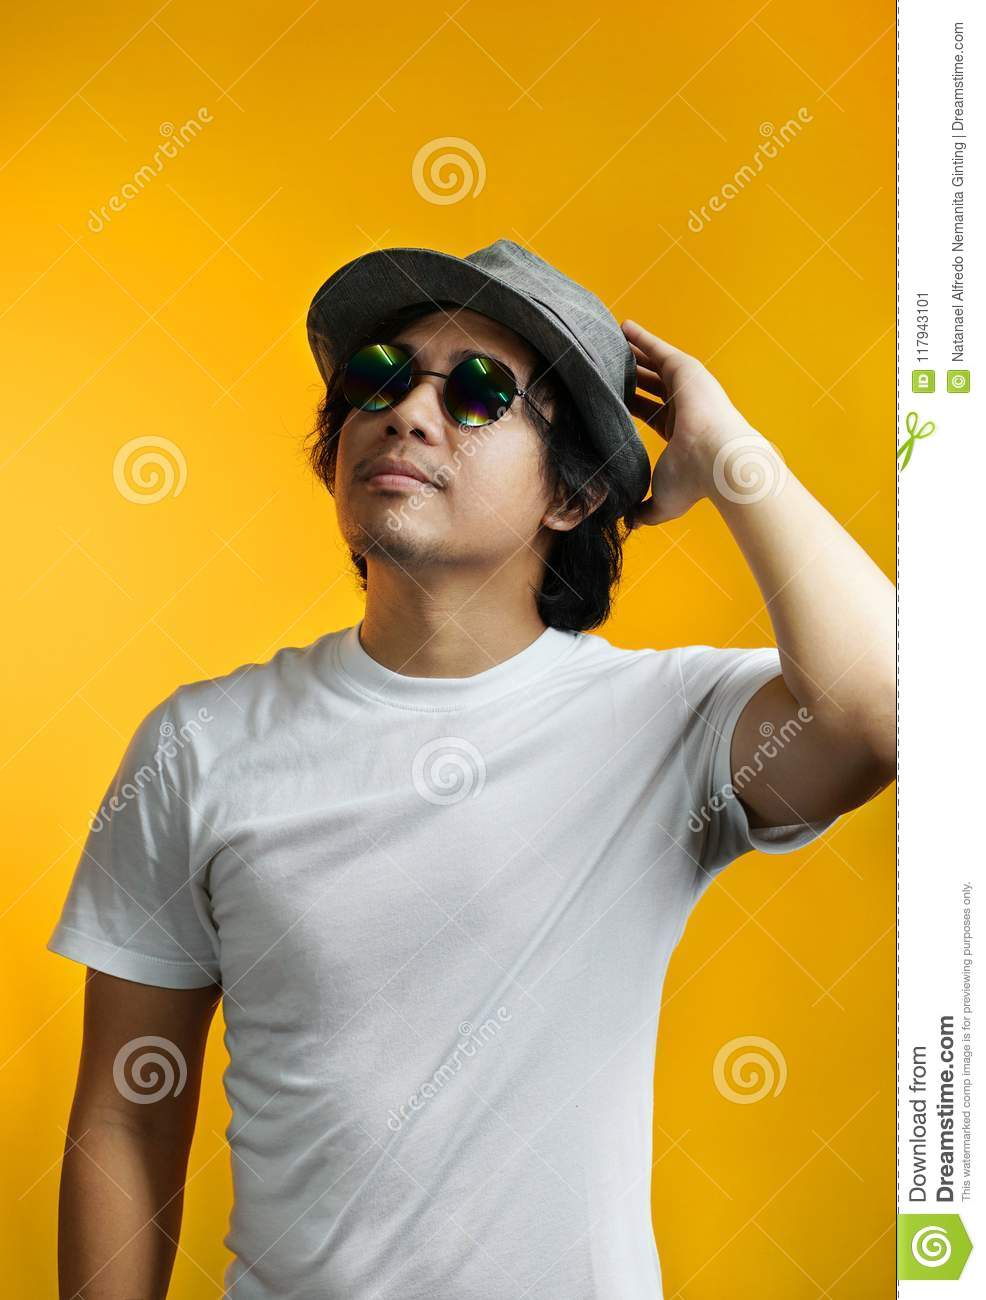 Asian Man Looking up and Holding His Head Wearing Sunglasses and